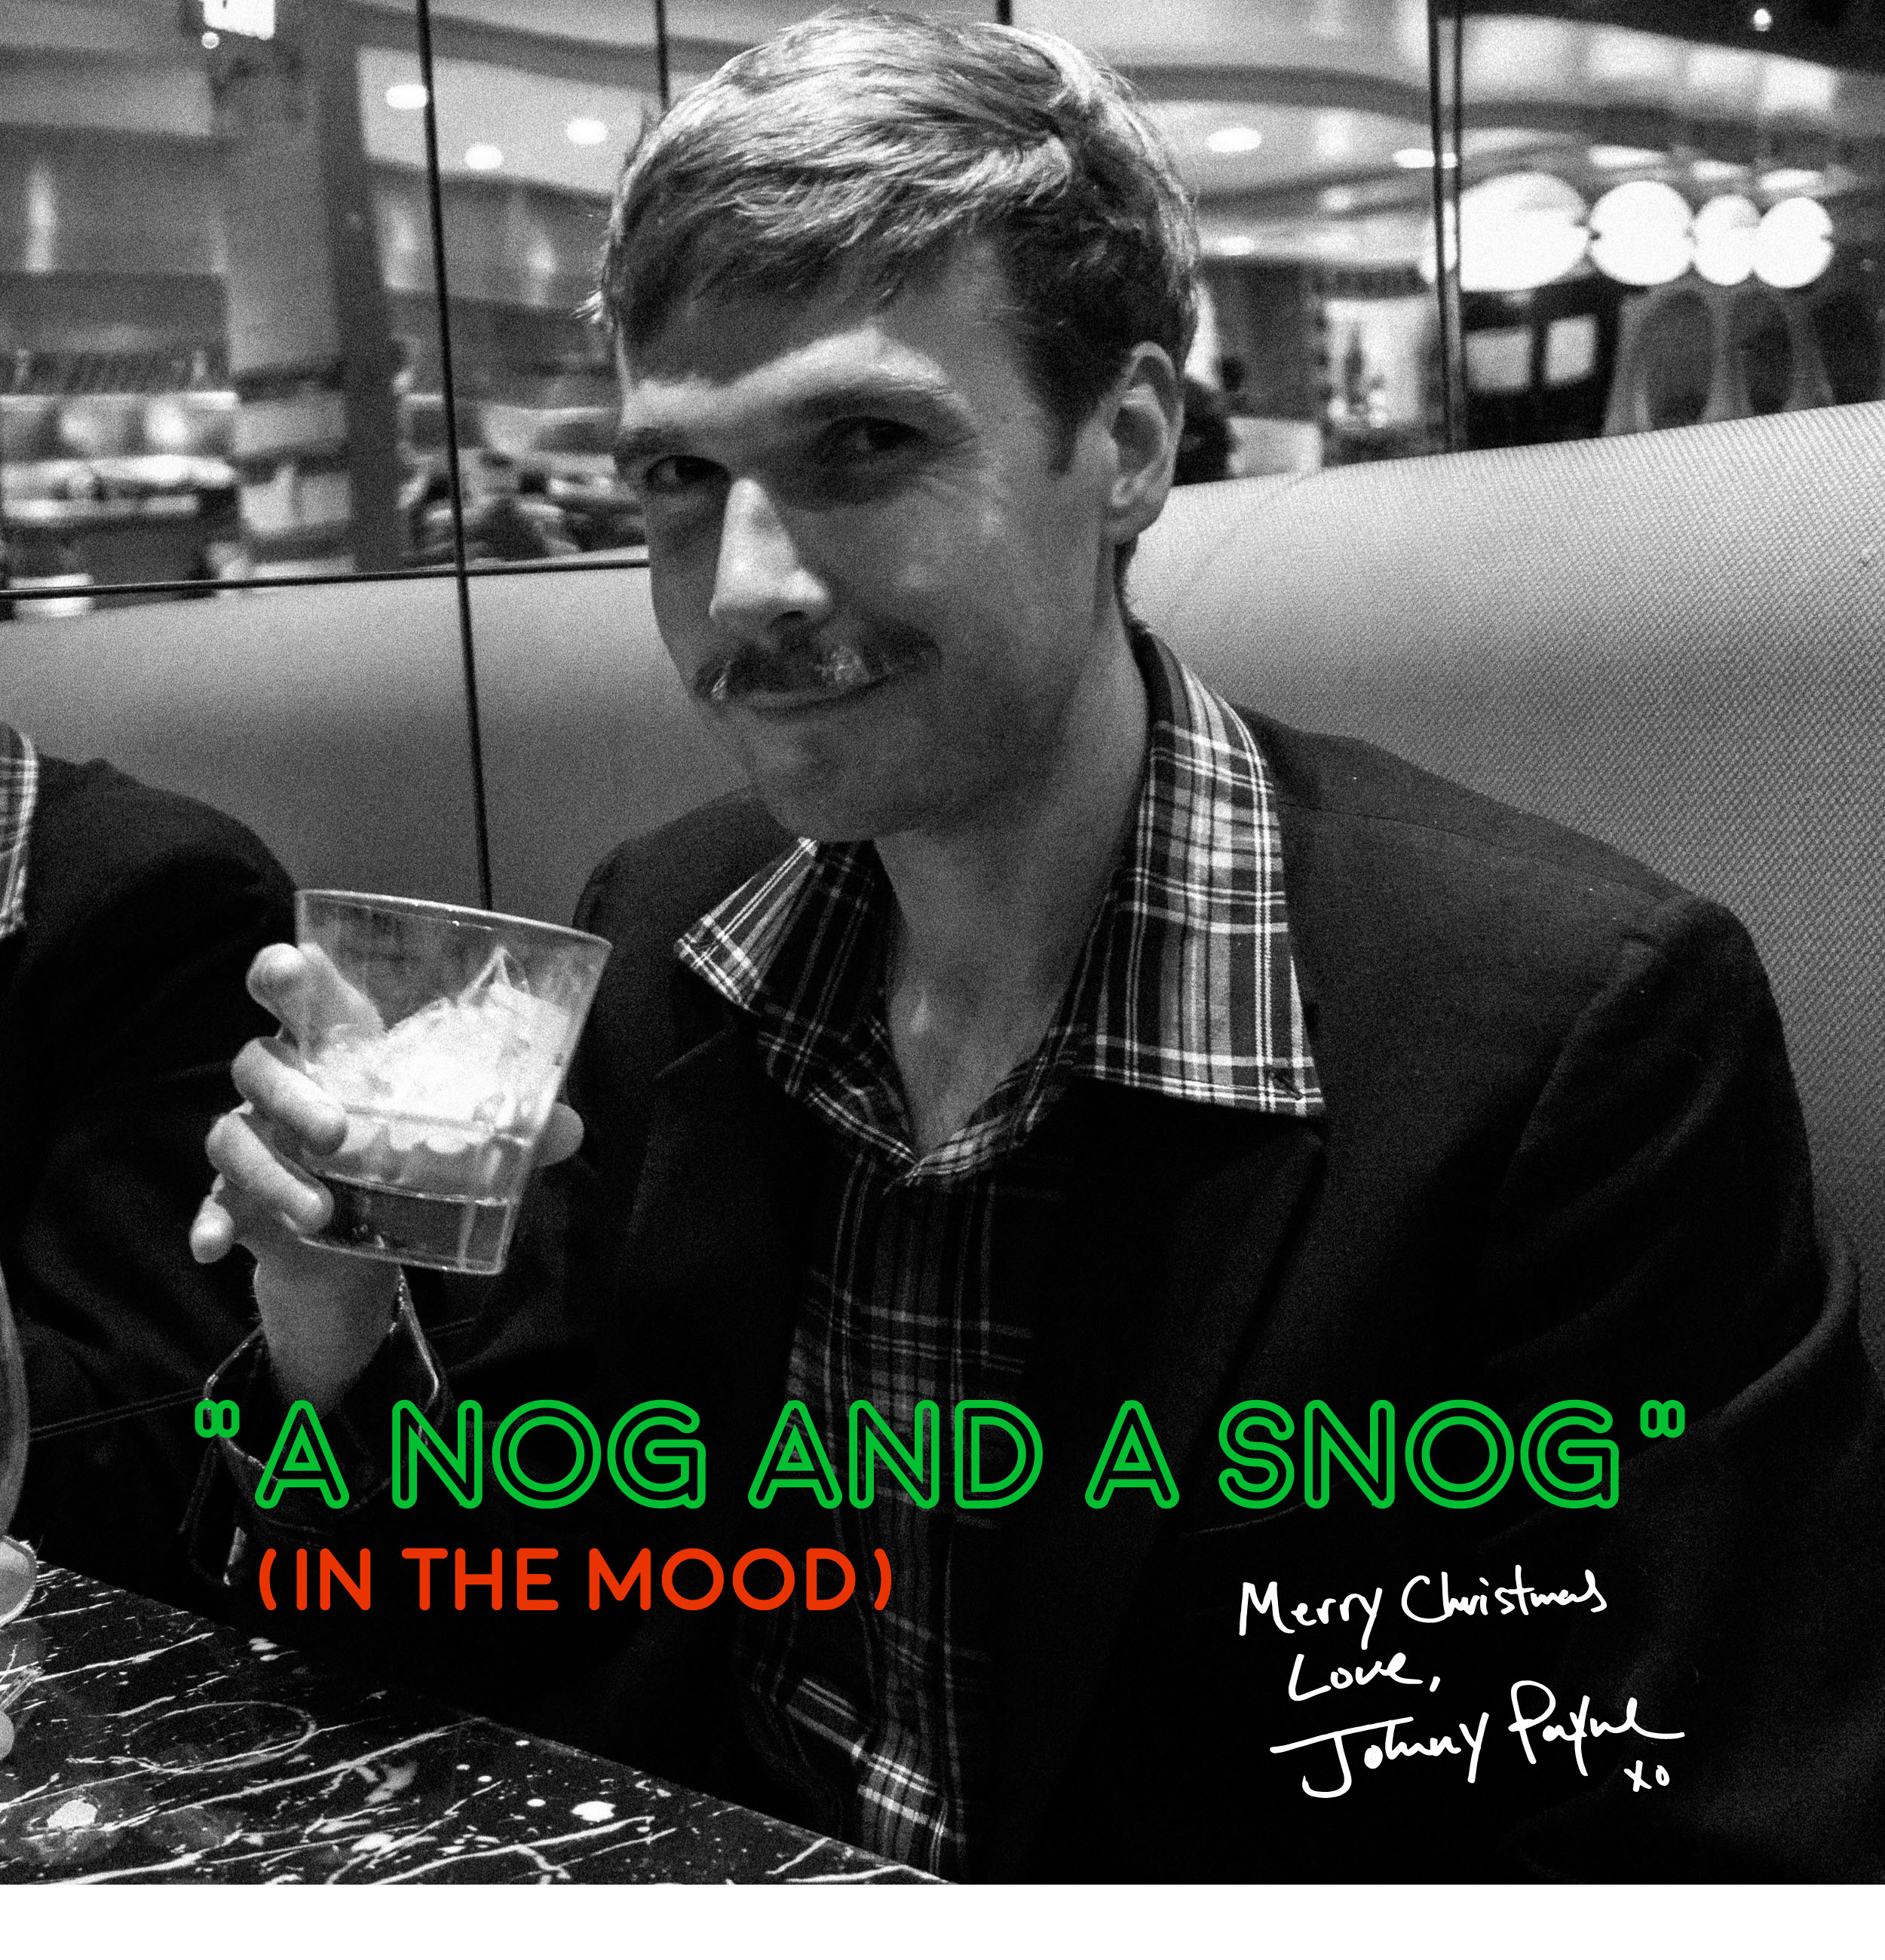 A Nog and a Snog - Johnny Payne.jpg